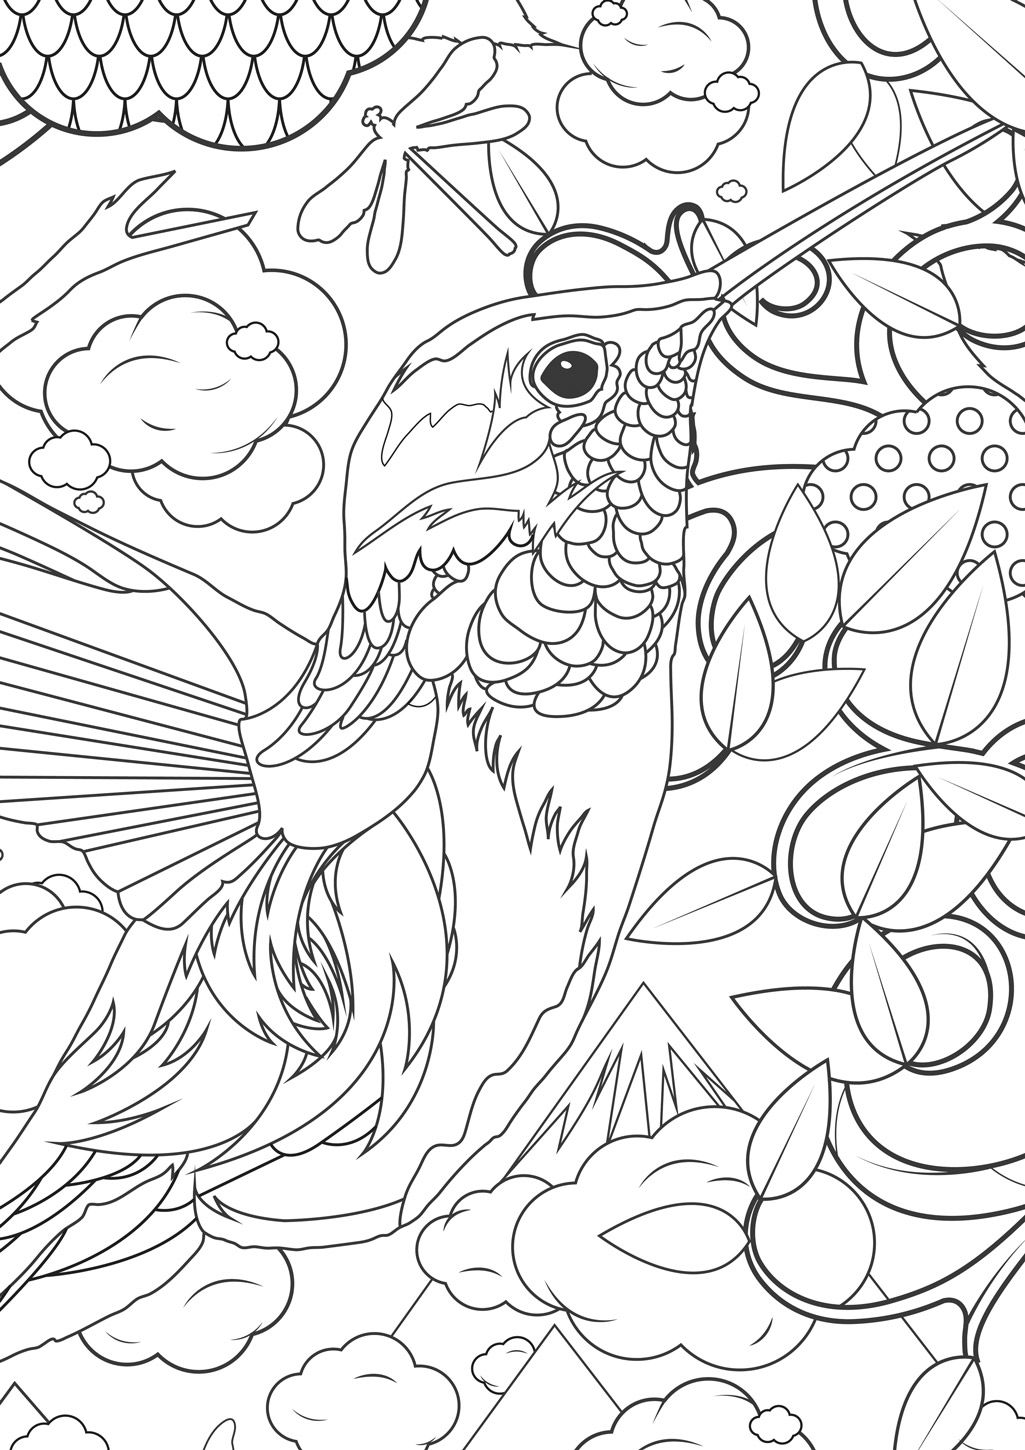 Animal Coloring Pages For Adults Difficult-animals- | For Fun ...